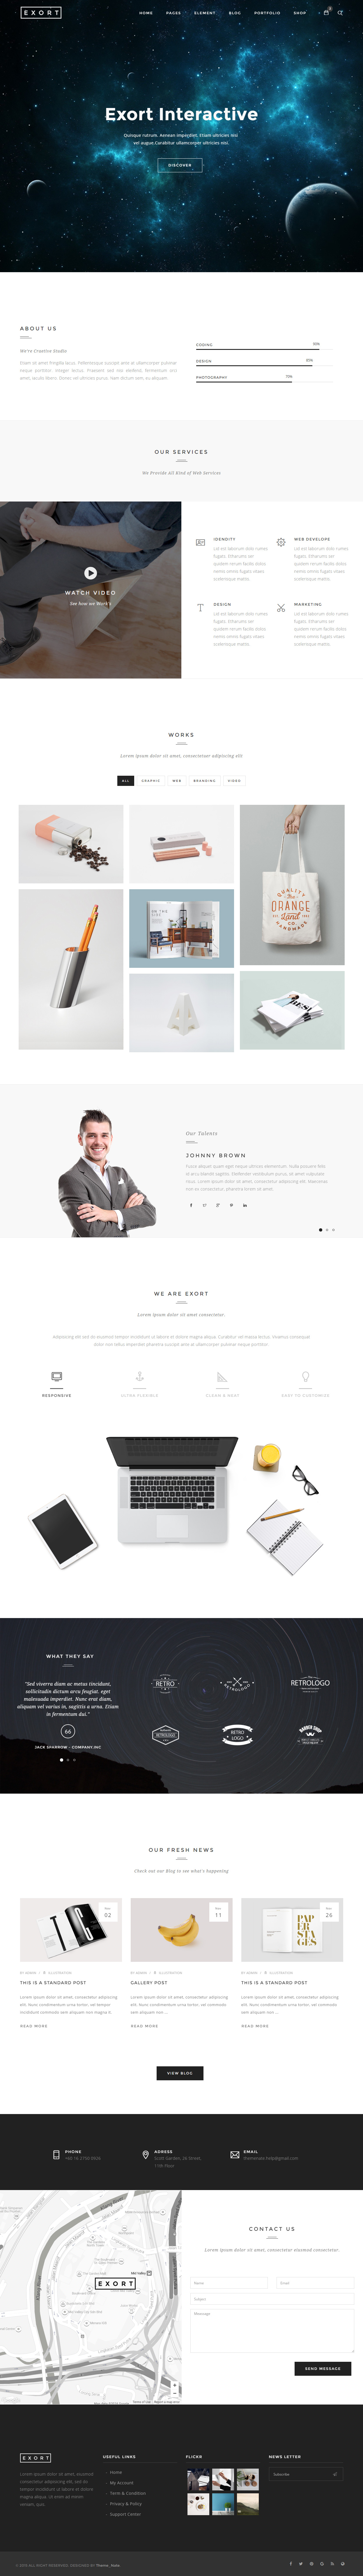 20 Best Html5 One Page Website Templates 2018 Responsive Miracle